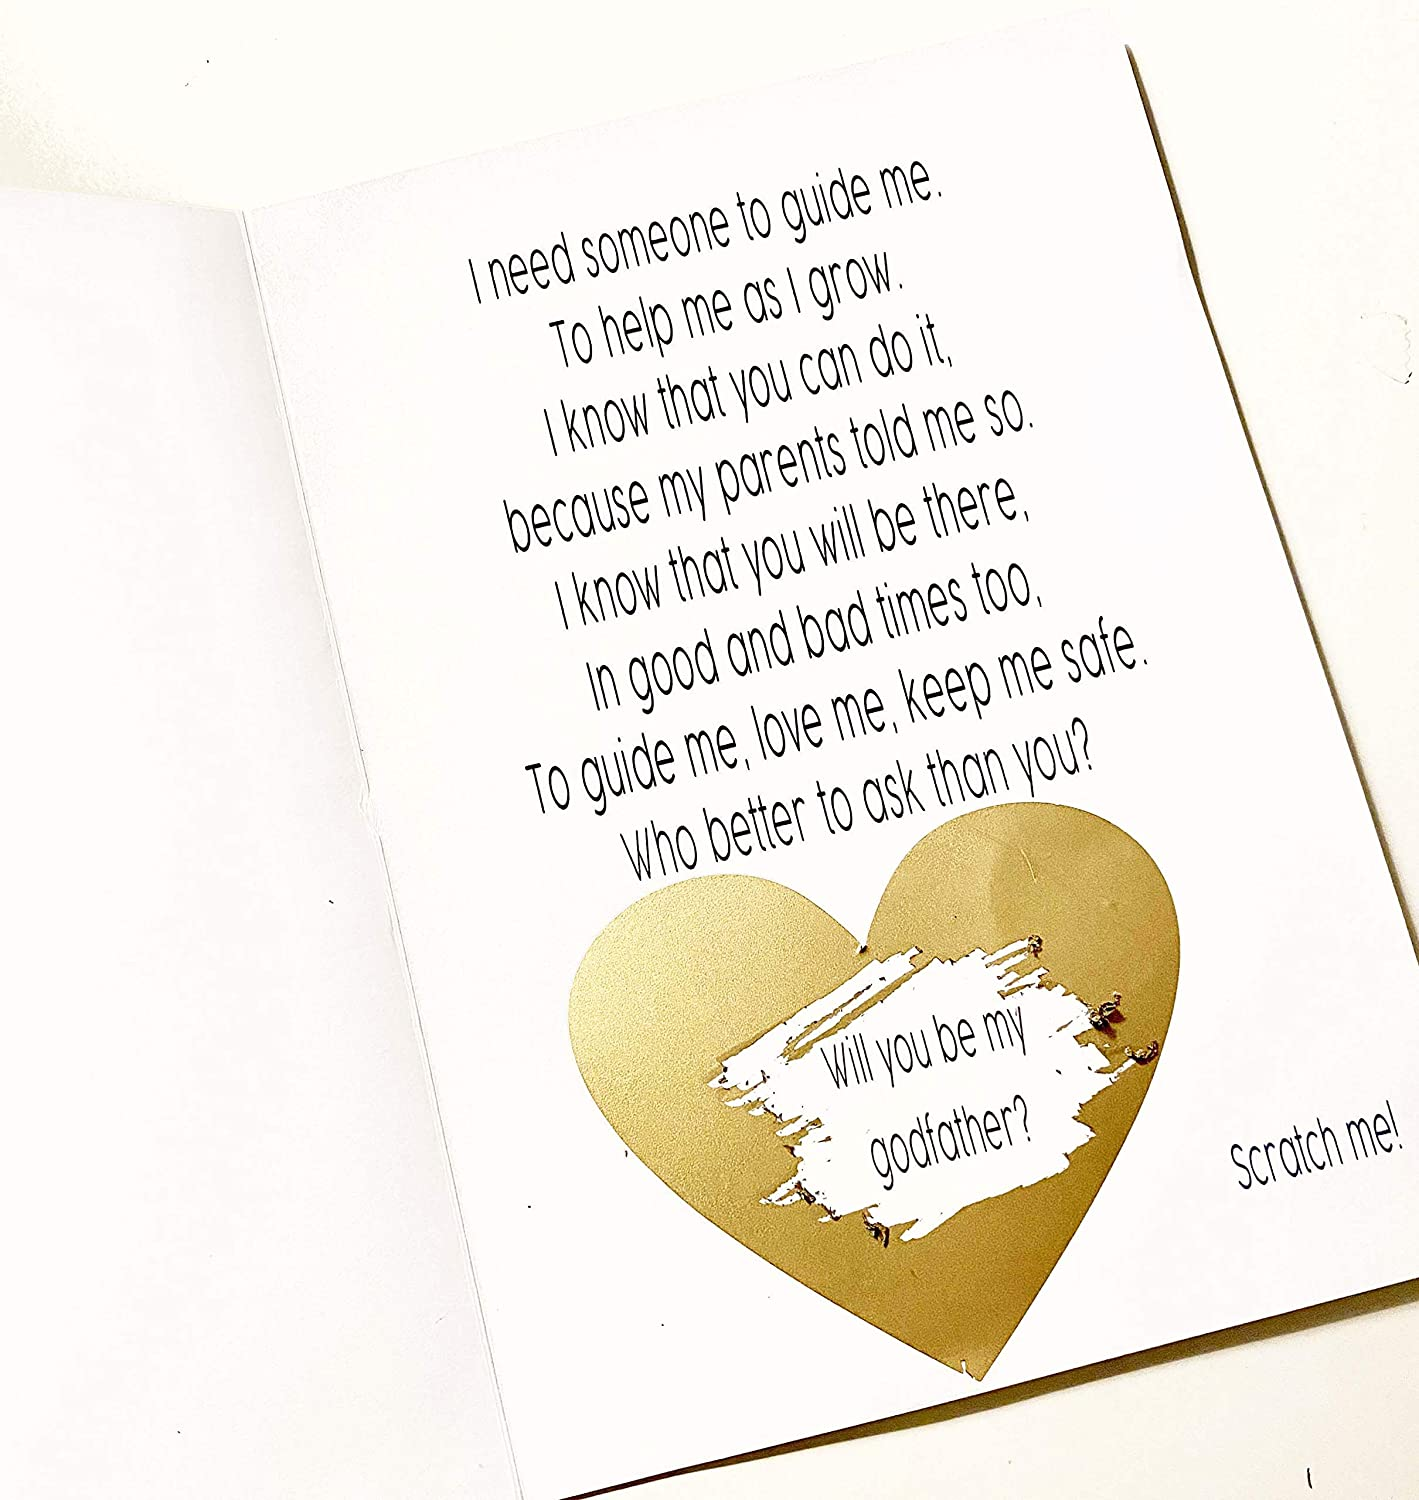 Godparent Proposal Scratch Off Cards, A7 Two cards included - one for Godmother, one for Godfather Folded 5x7 inches